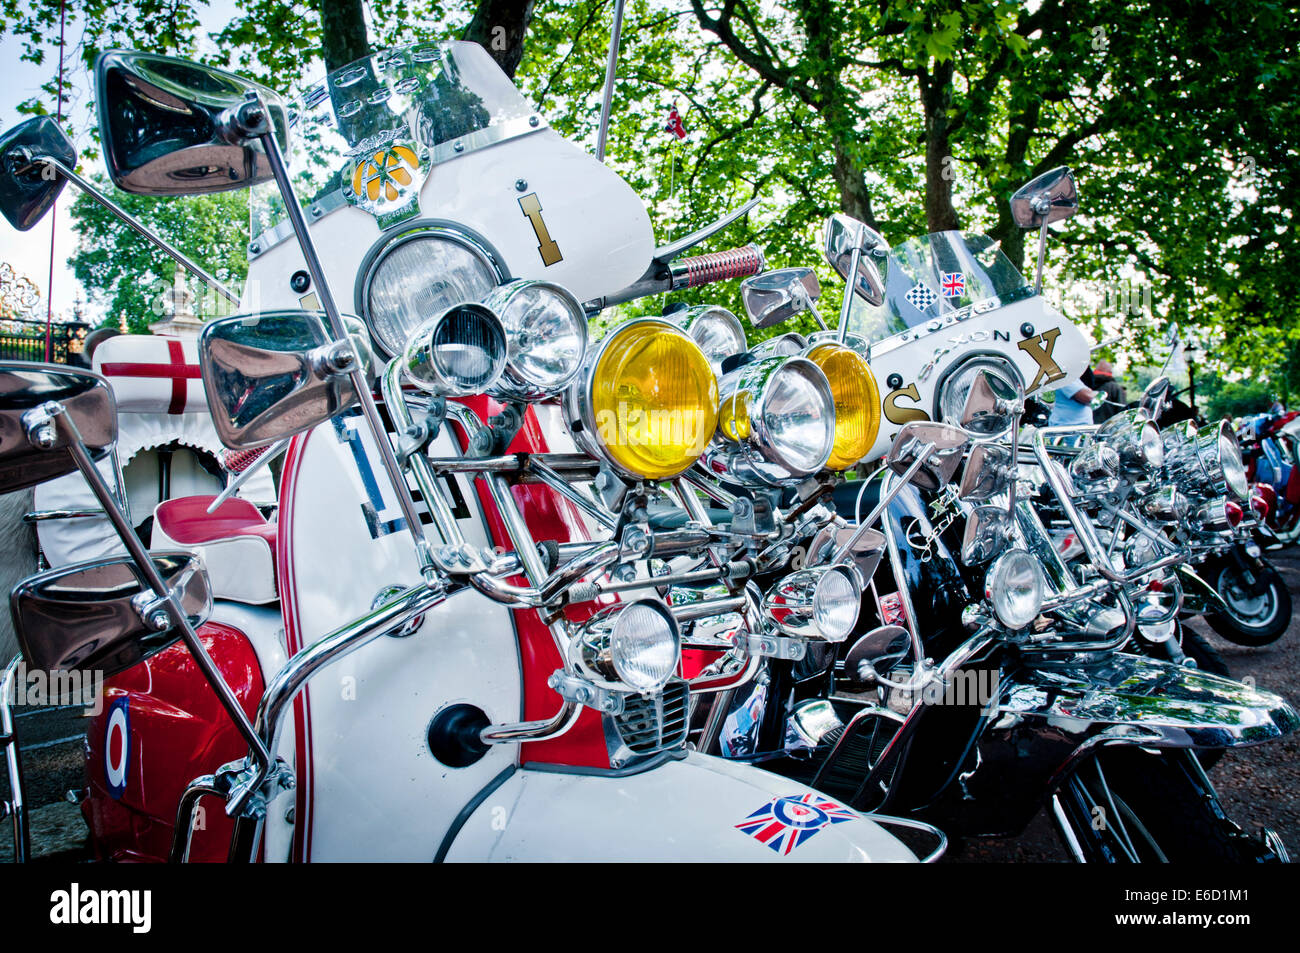 Mod Lambretta and Vespa Scooters at a rally in Regents Park, London - Stock Image